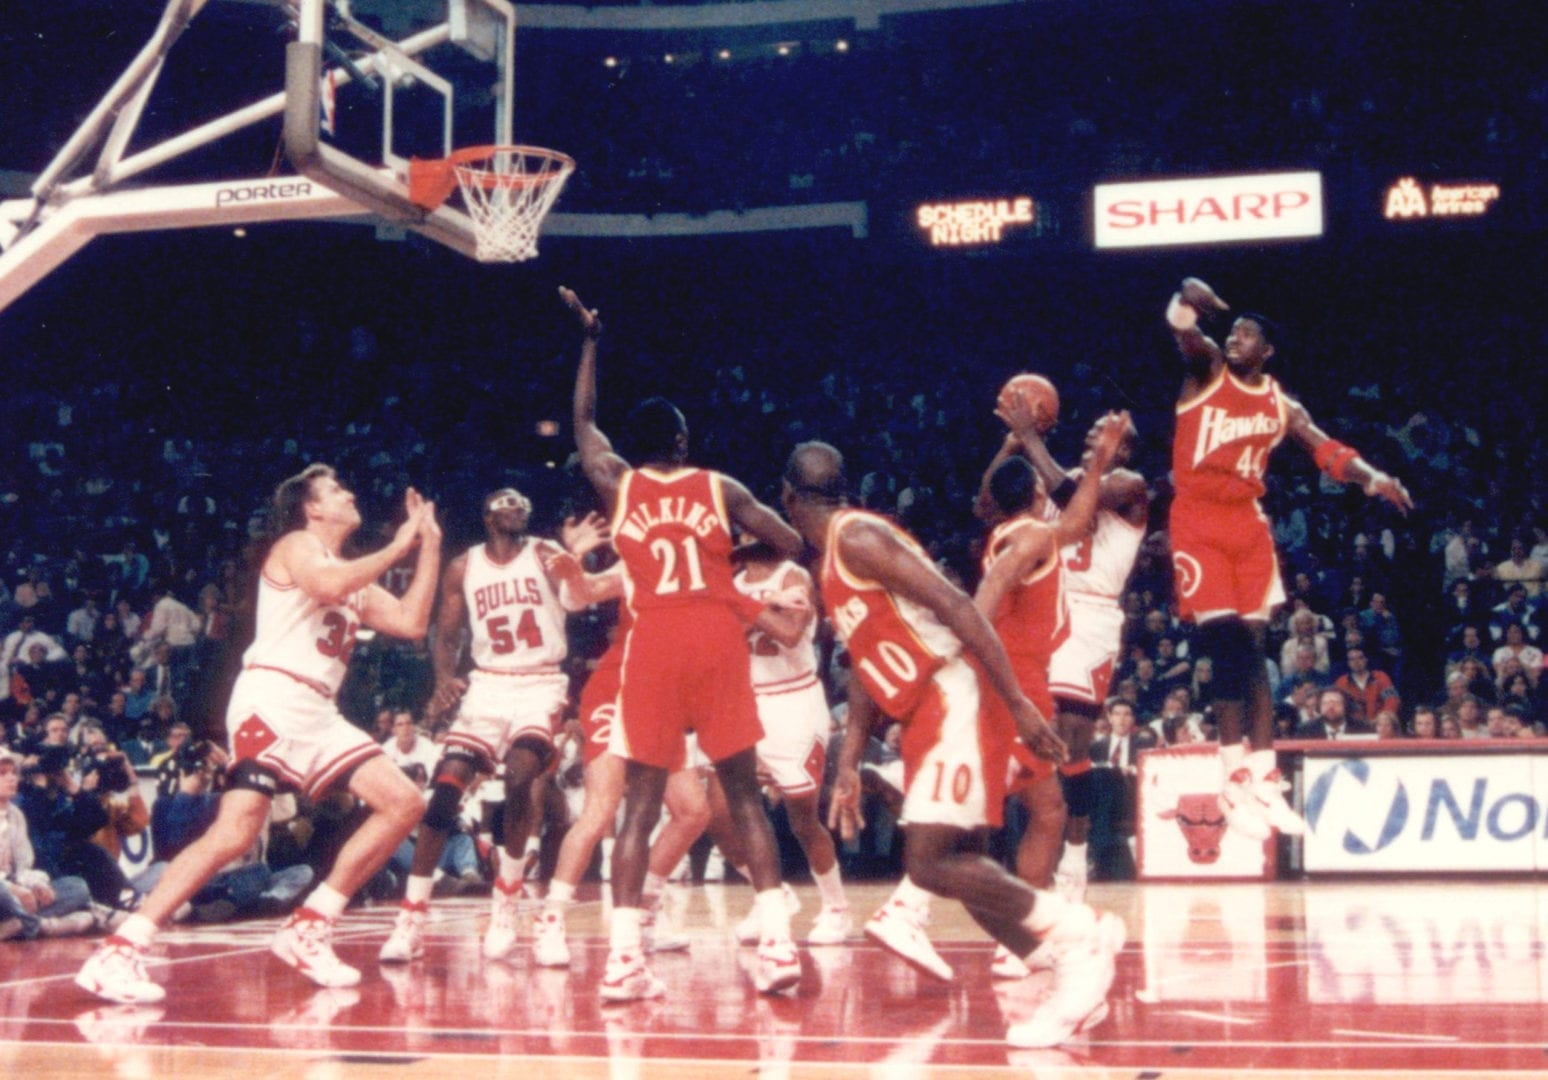 MJ doing a jump shot over a crowd of players